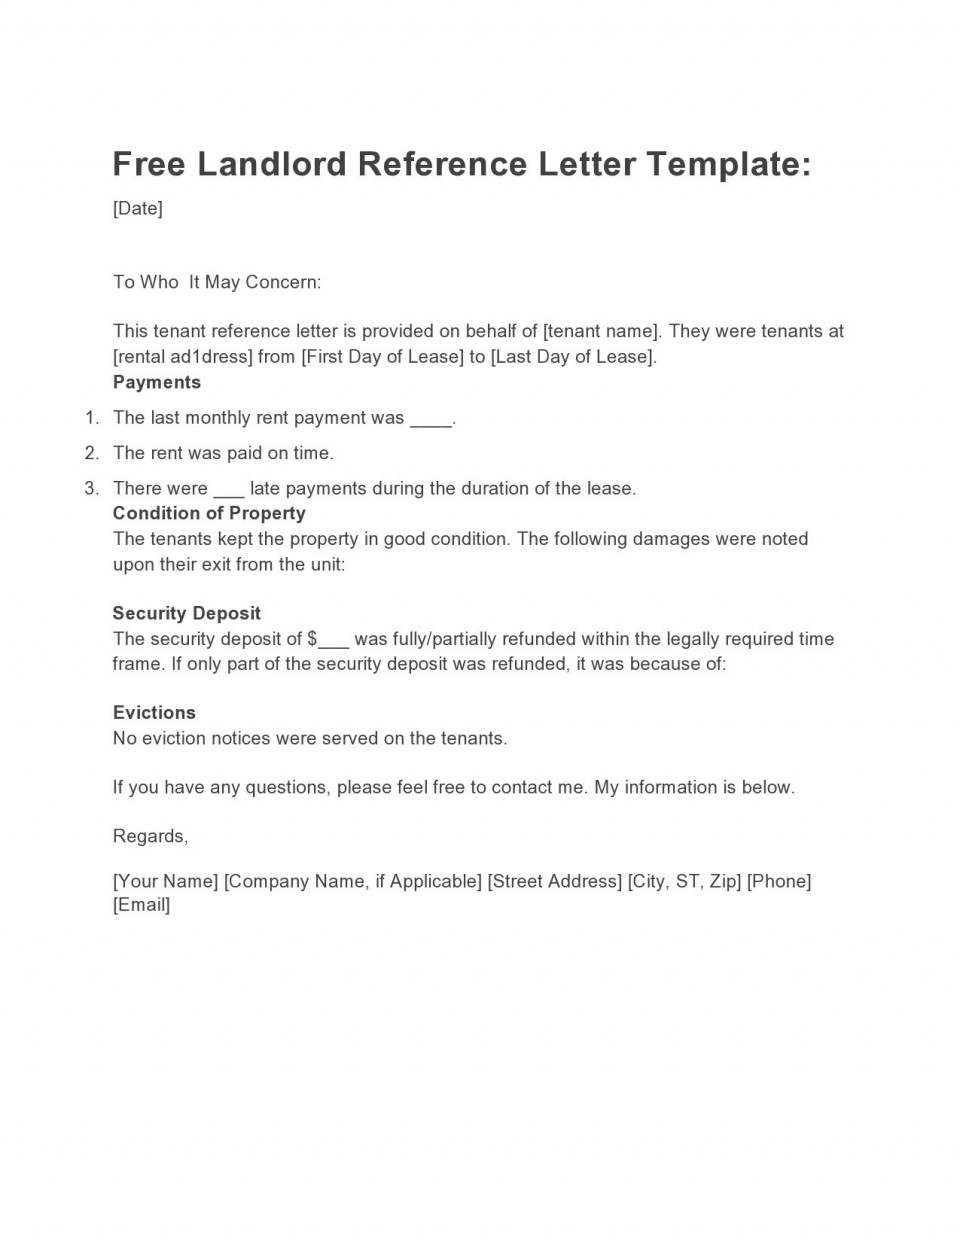 007 Astounding Free Reference Letter Template For Tenant Photo 960